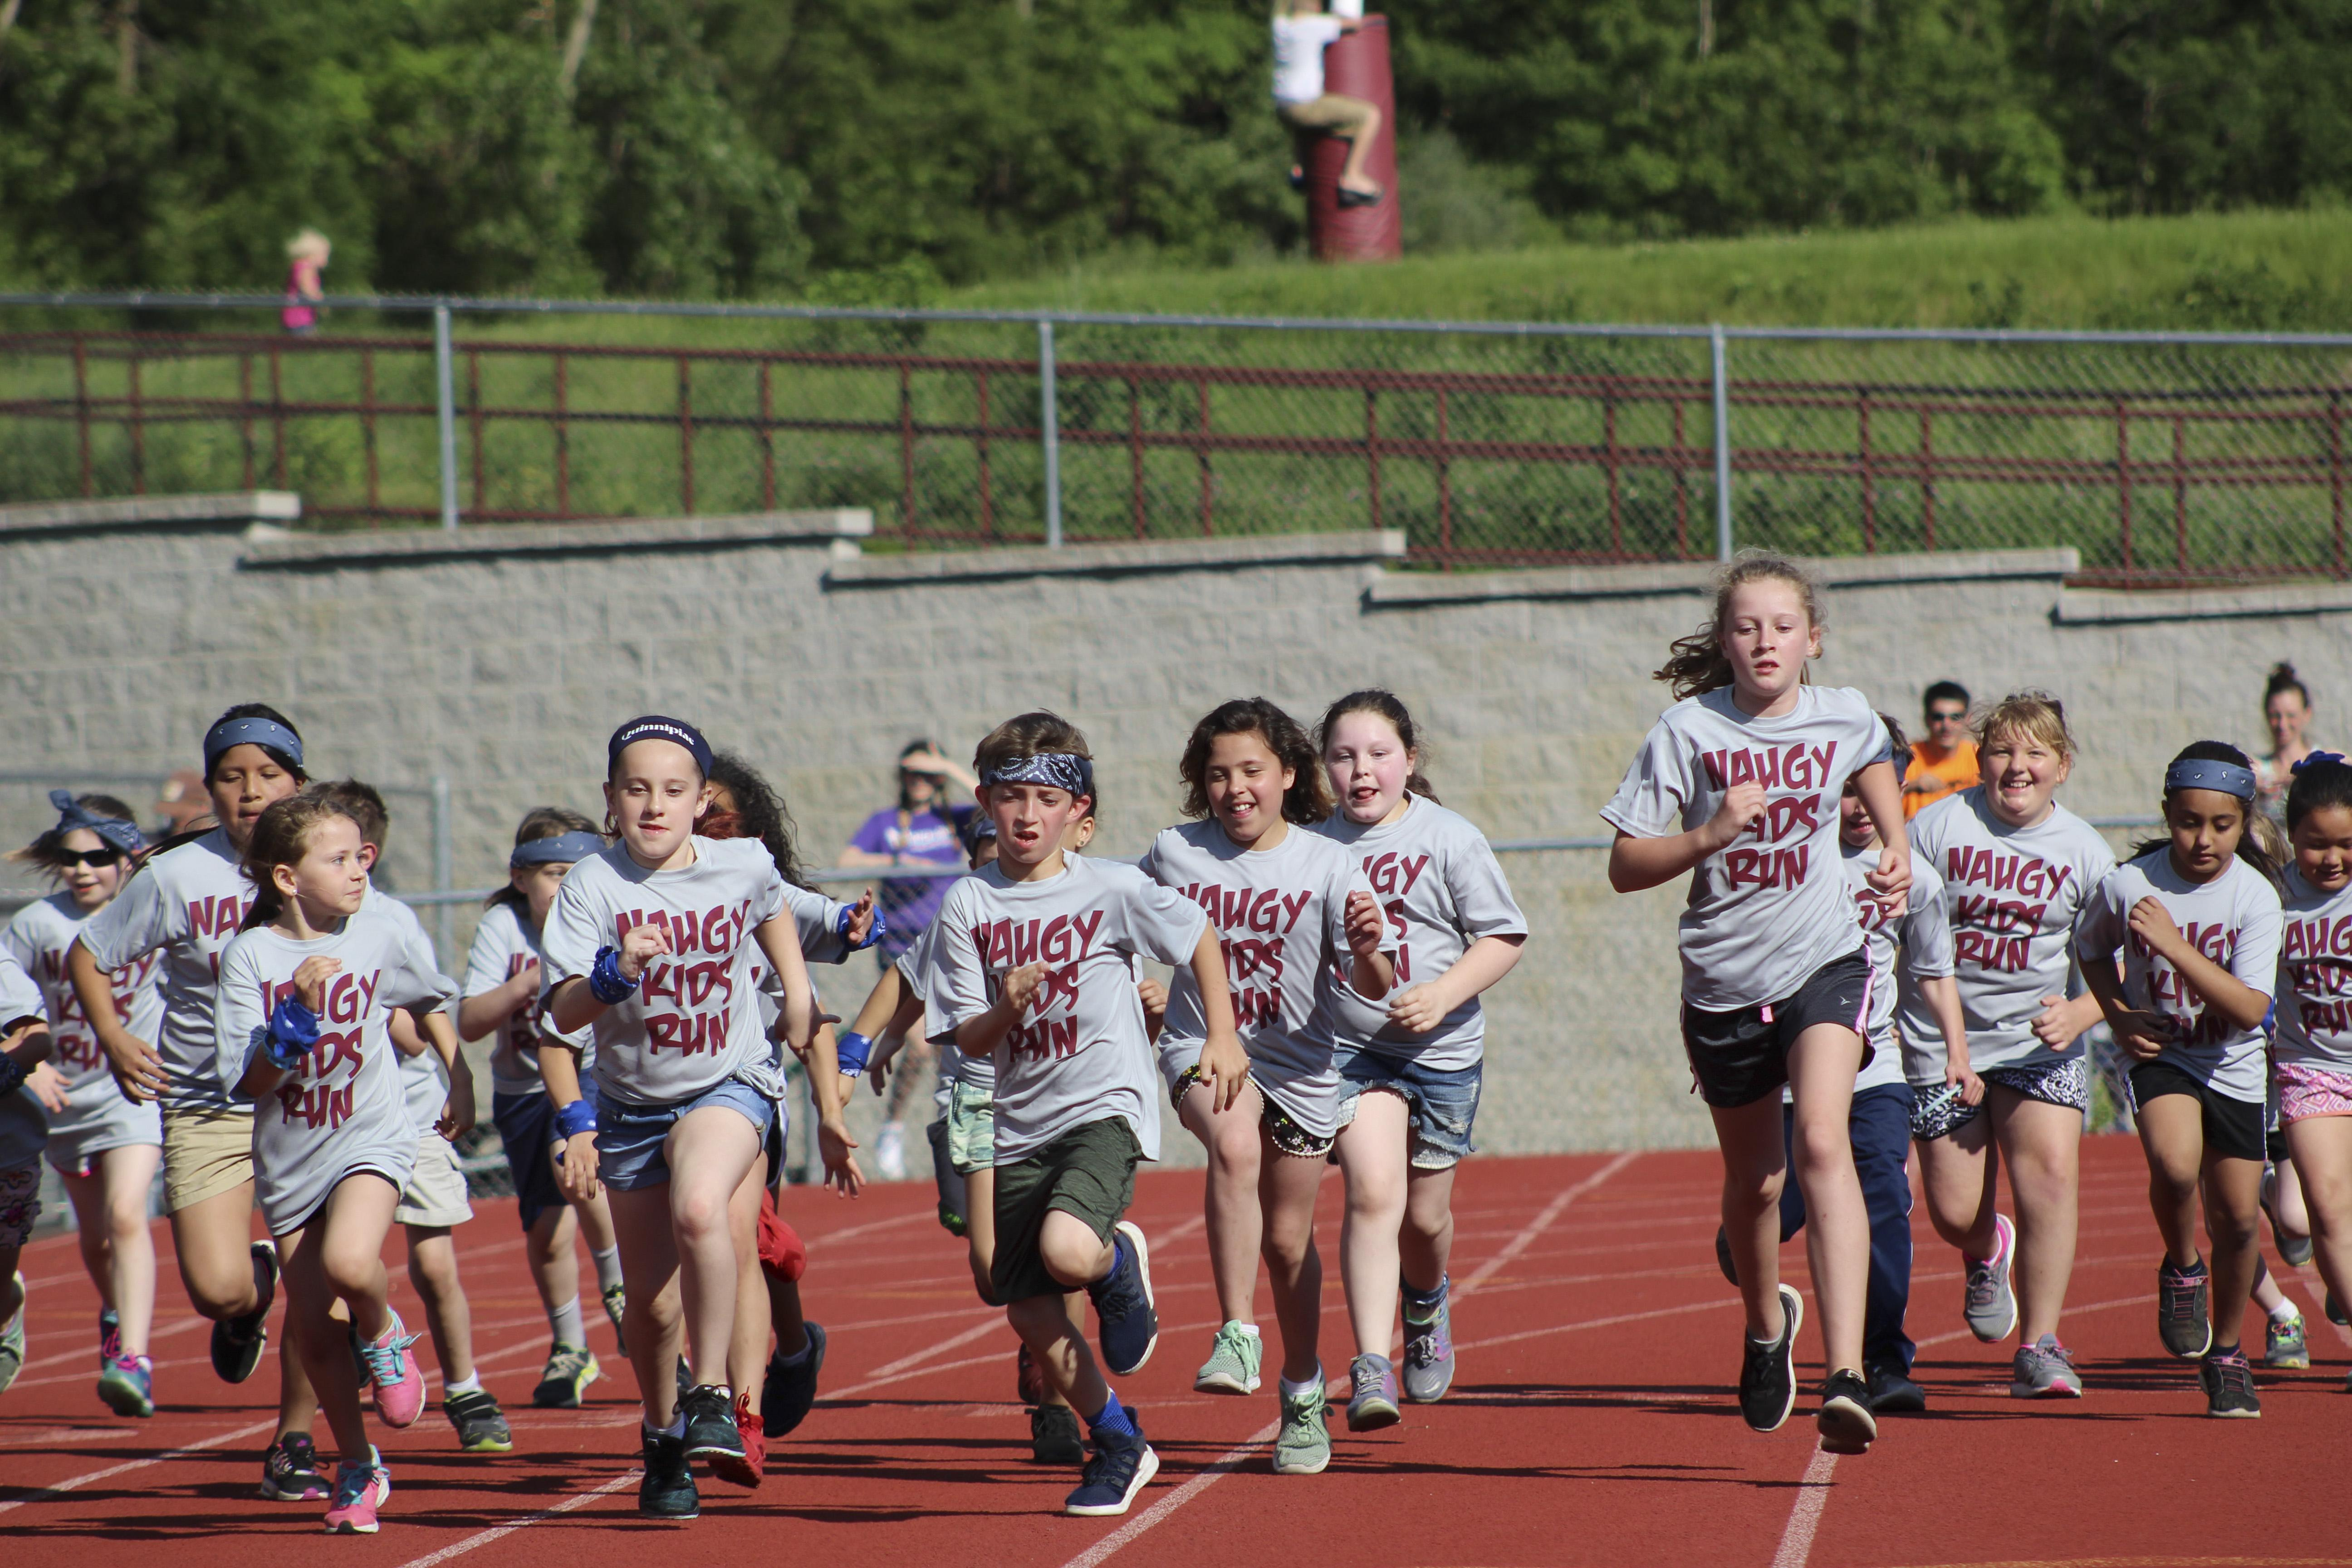 Elementary students run on high school track